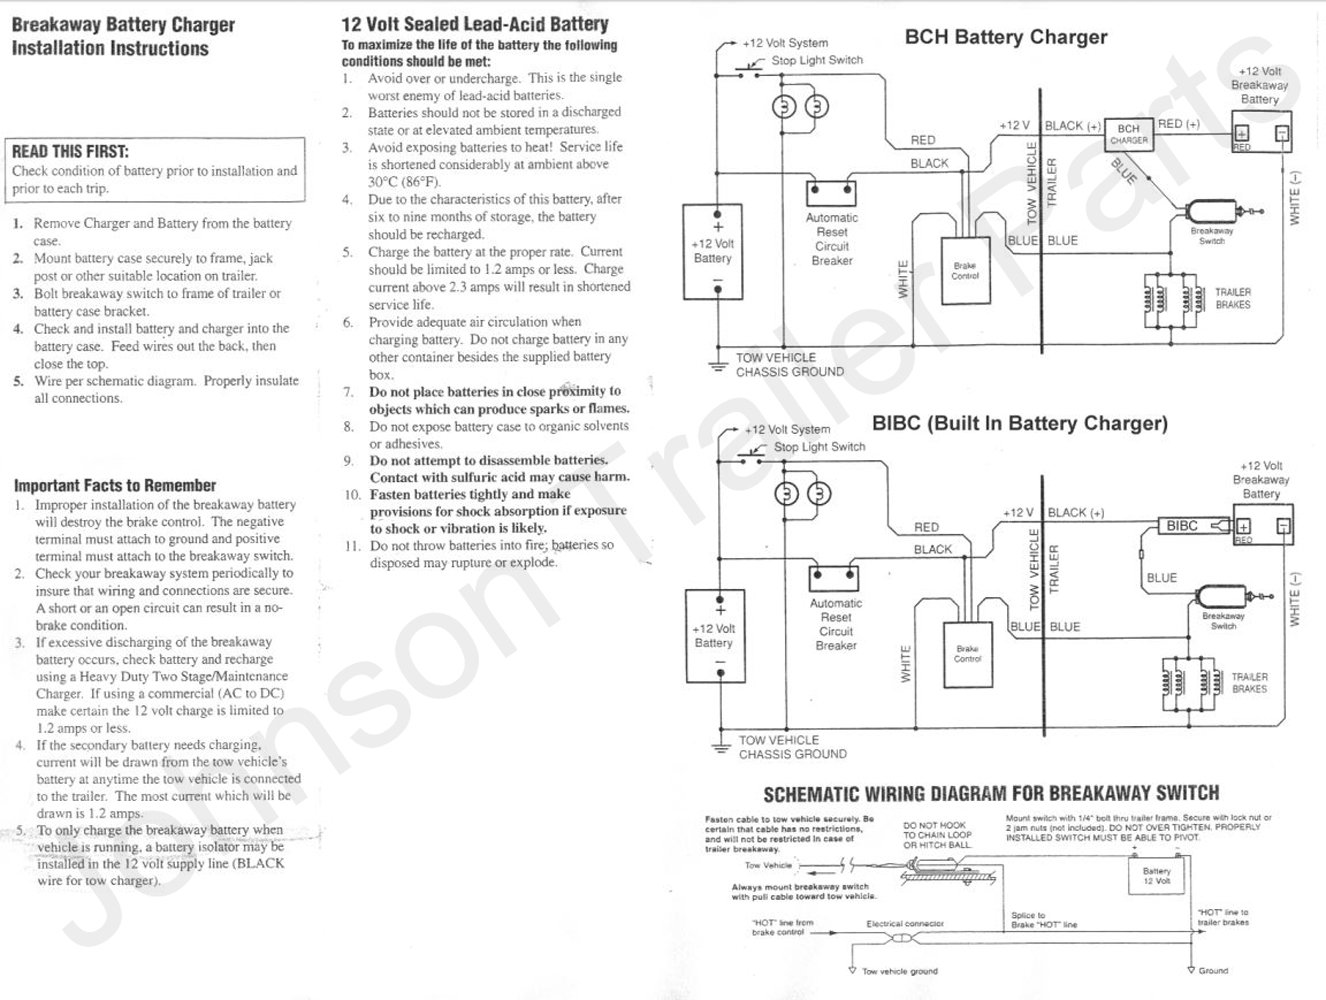 718PvzZr5ZL._SL1326_ amazon com trailer breakaway kit led readout breakaway switch trailer breakaway switch wiring diagram at virtualis.co